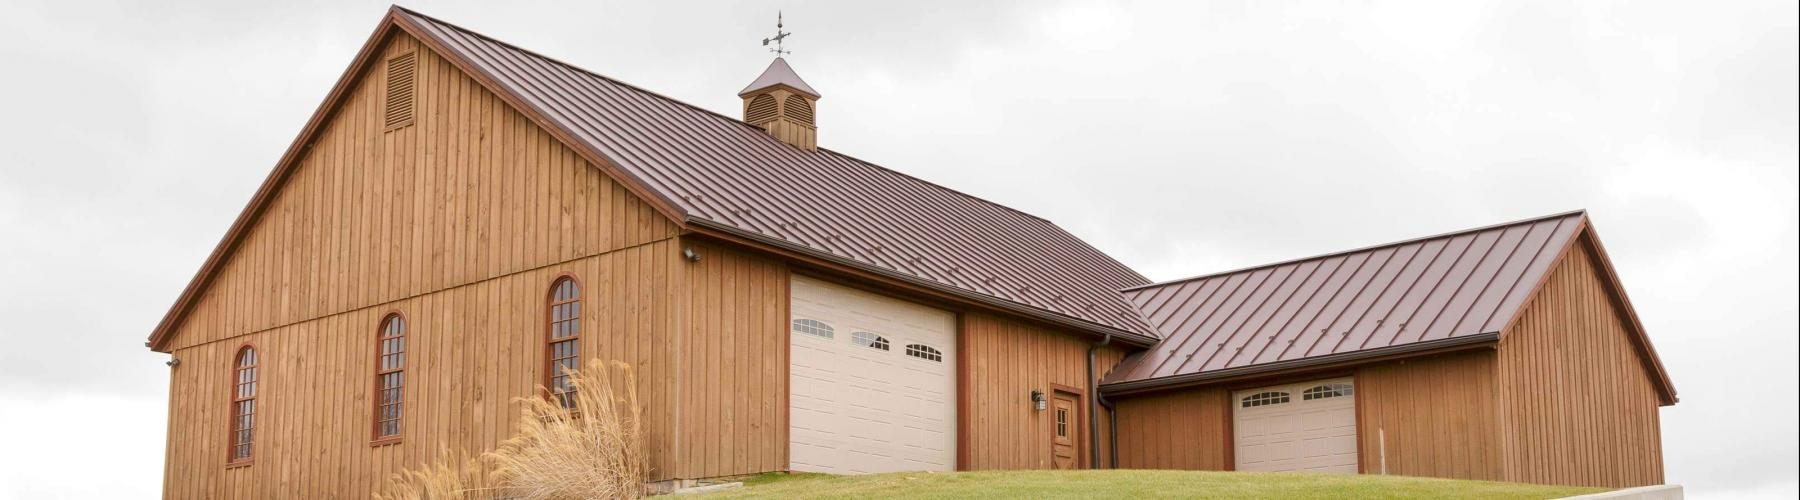 Stable Hollow Construction built this bank barn.